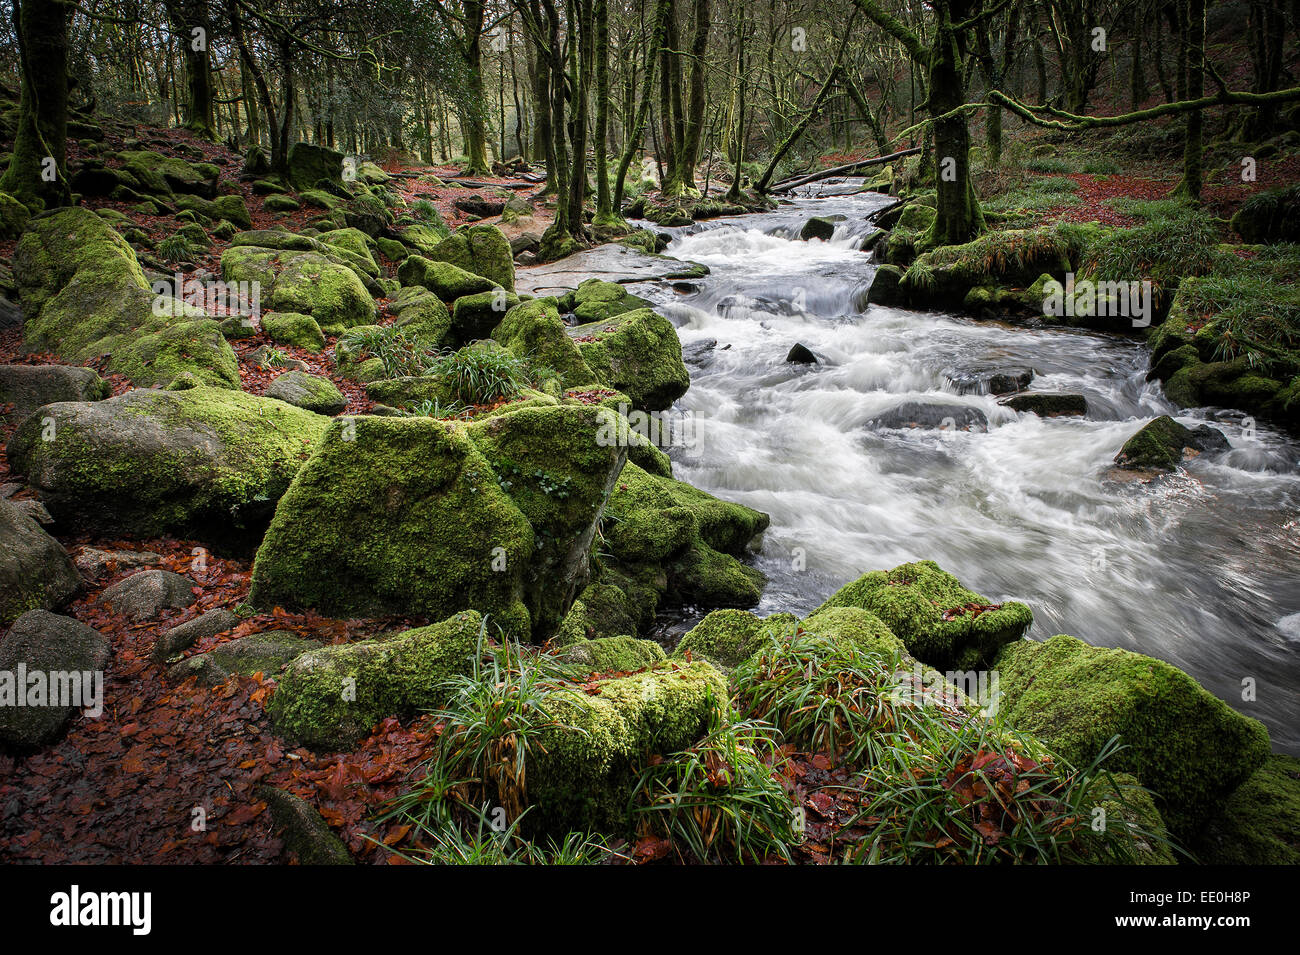 The River Fowey running through the Golitha Falls National Nature Reserve in Cornwall. - Stock Image